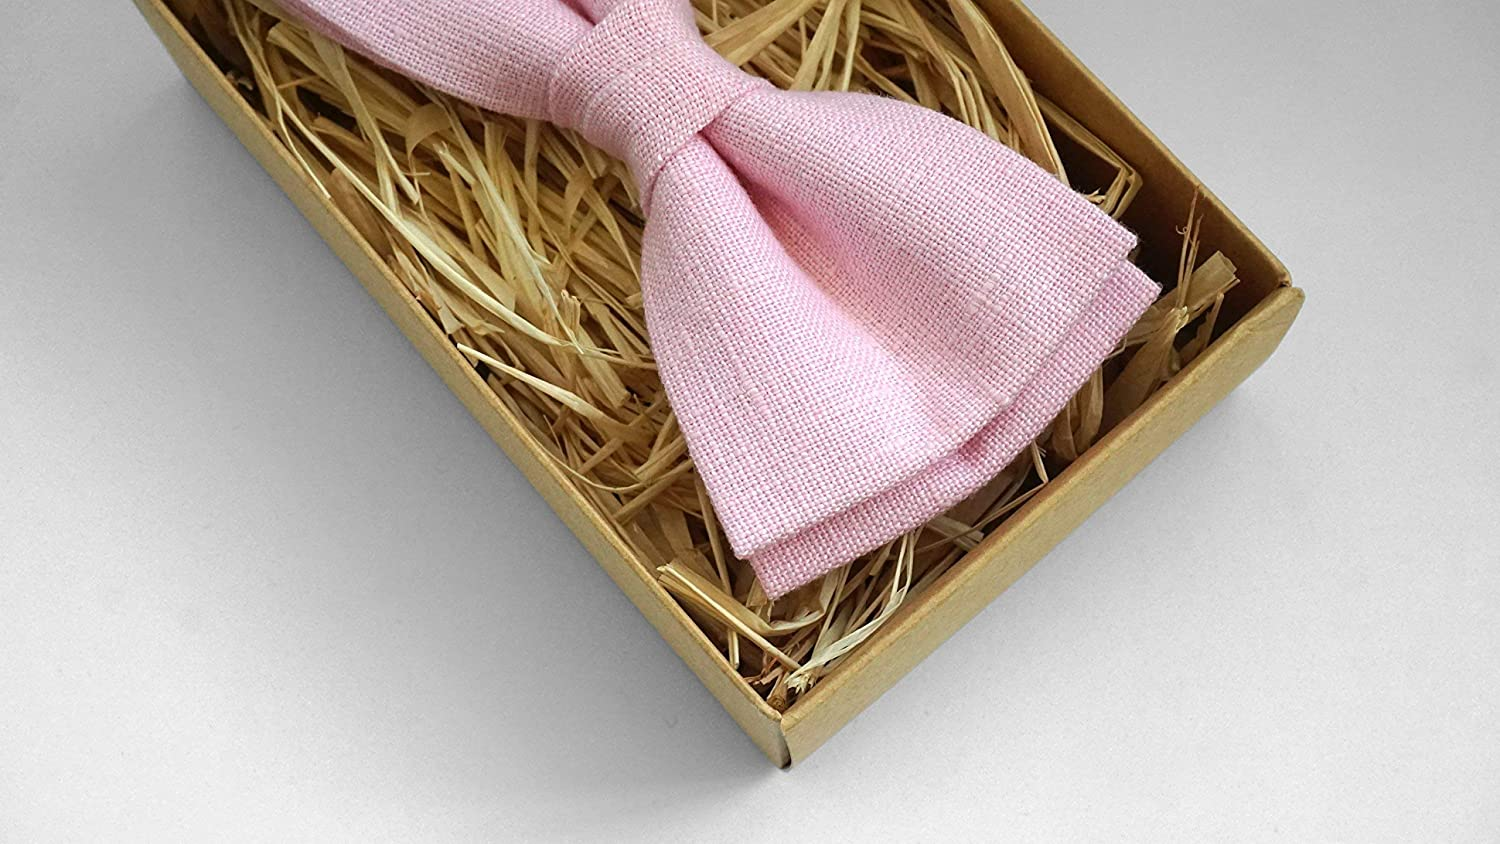 Pink color linen necktie for man wedding necktie for groomsmen proposal gift available with matching pocket square